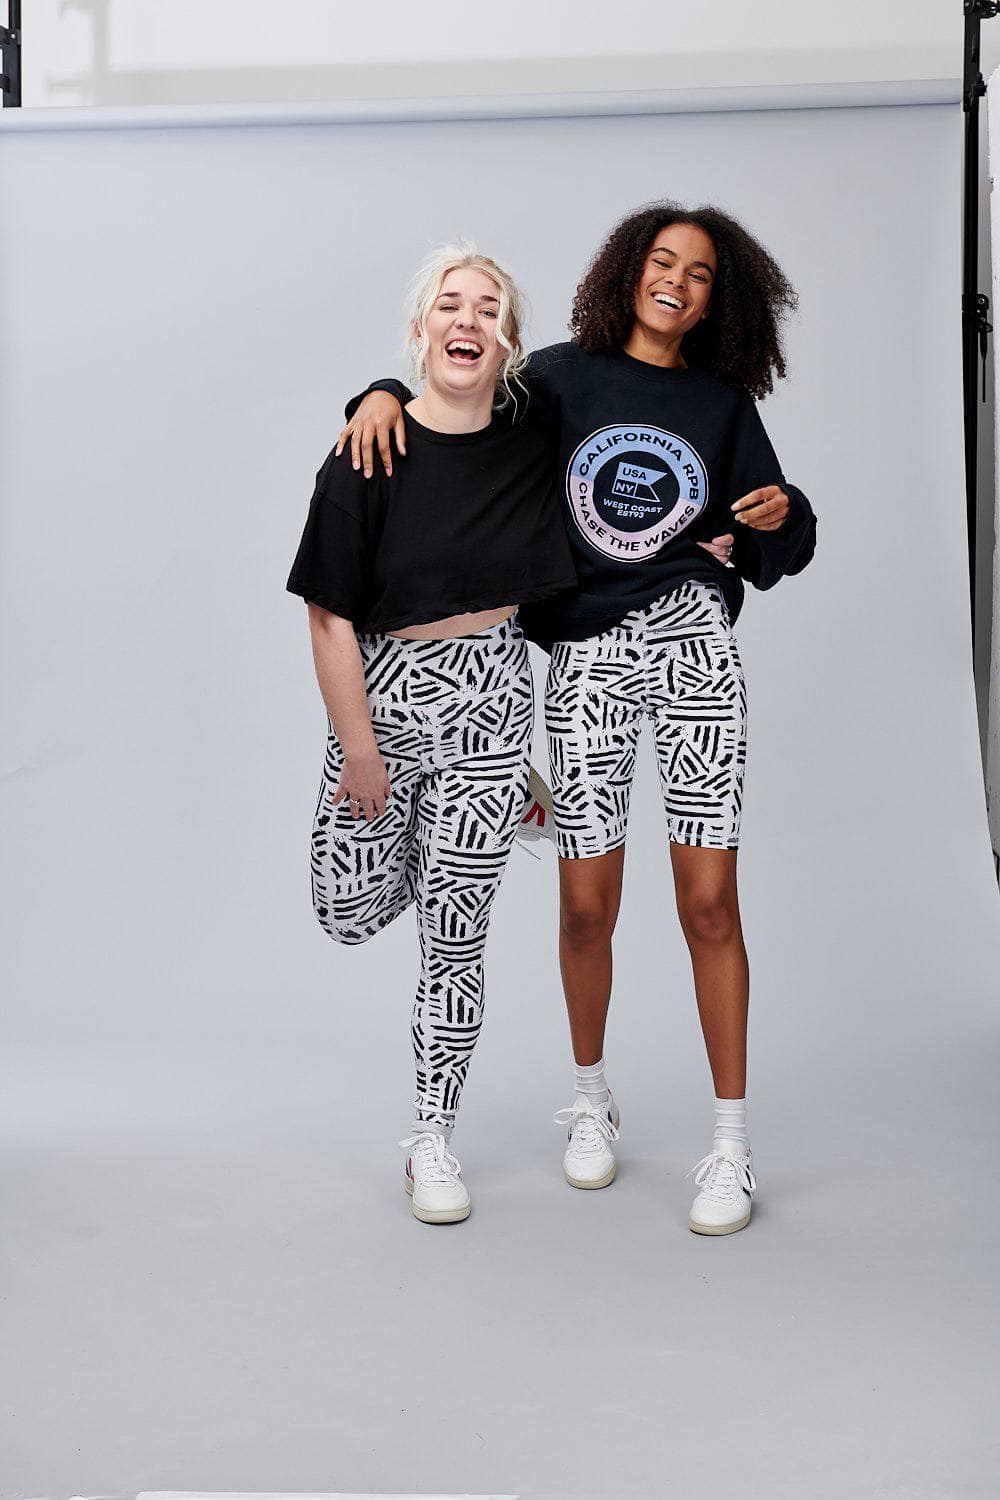 Lucy & Yak Leggings 'Codie' High Waisted Leggings in Black and White Print